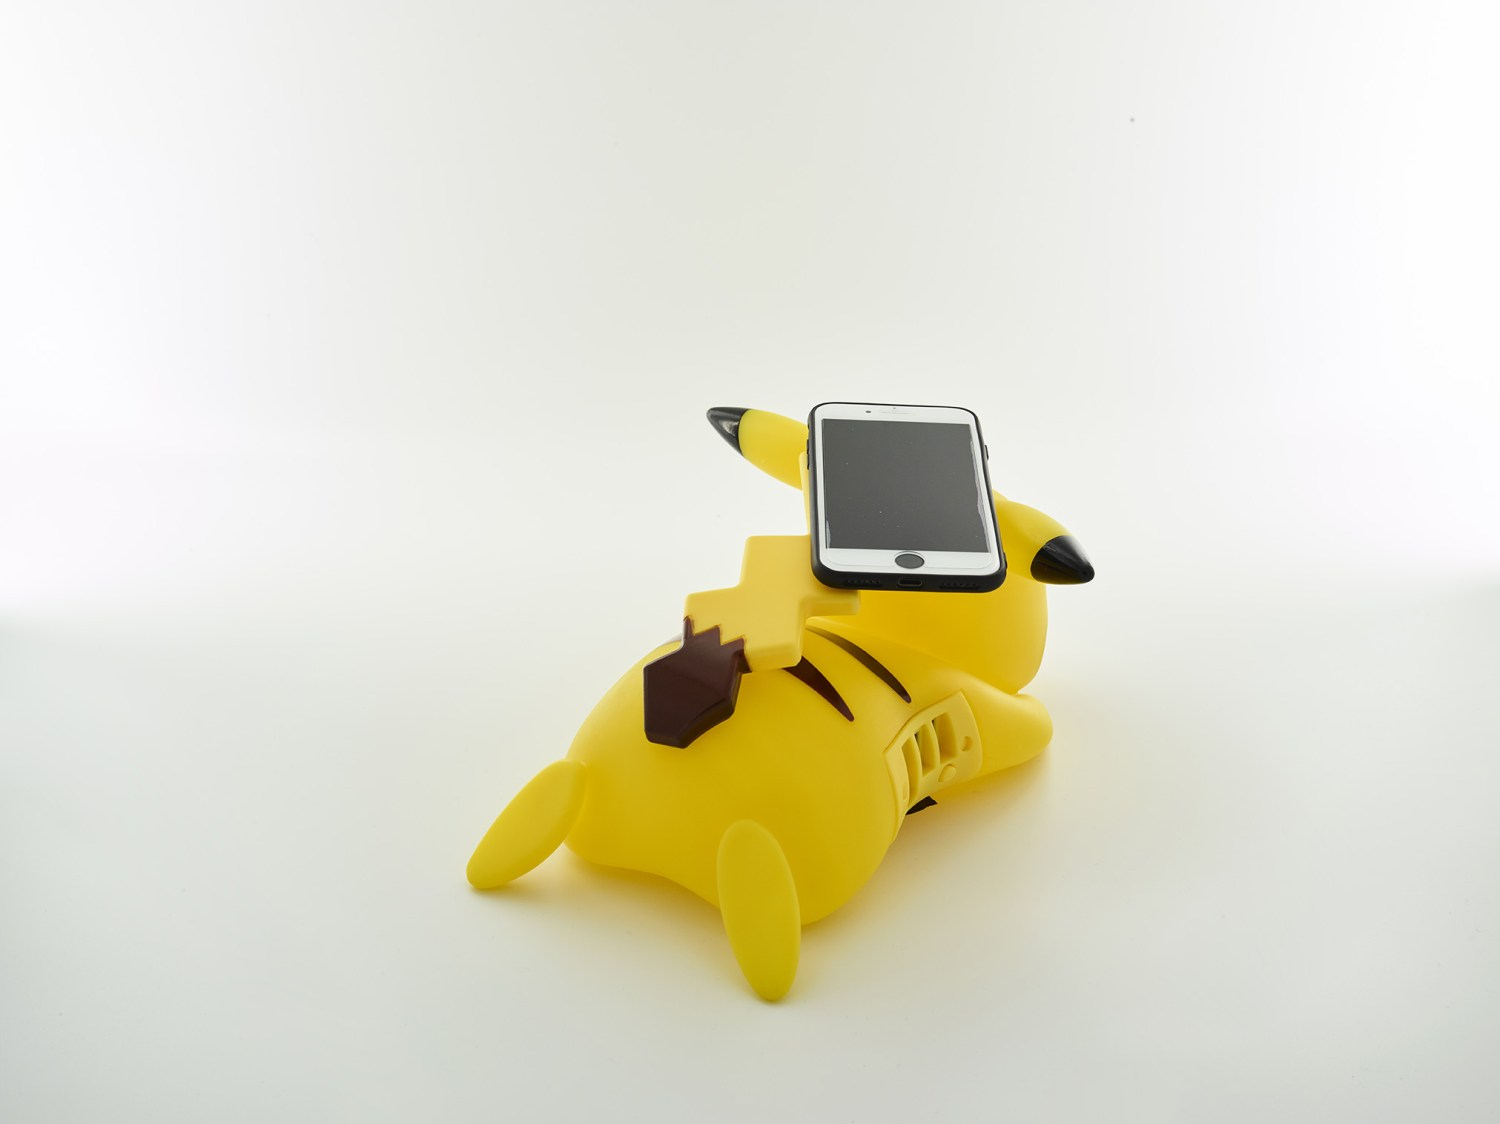 Pikachu wireless charger back view